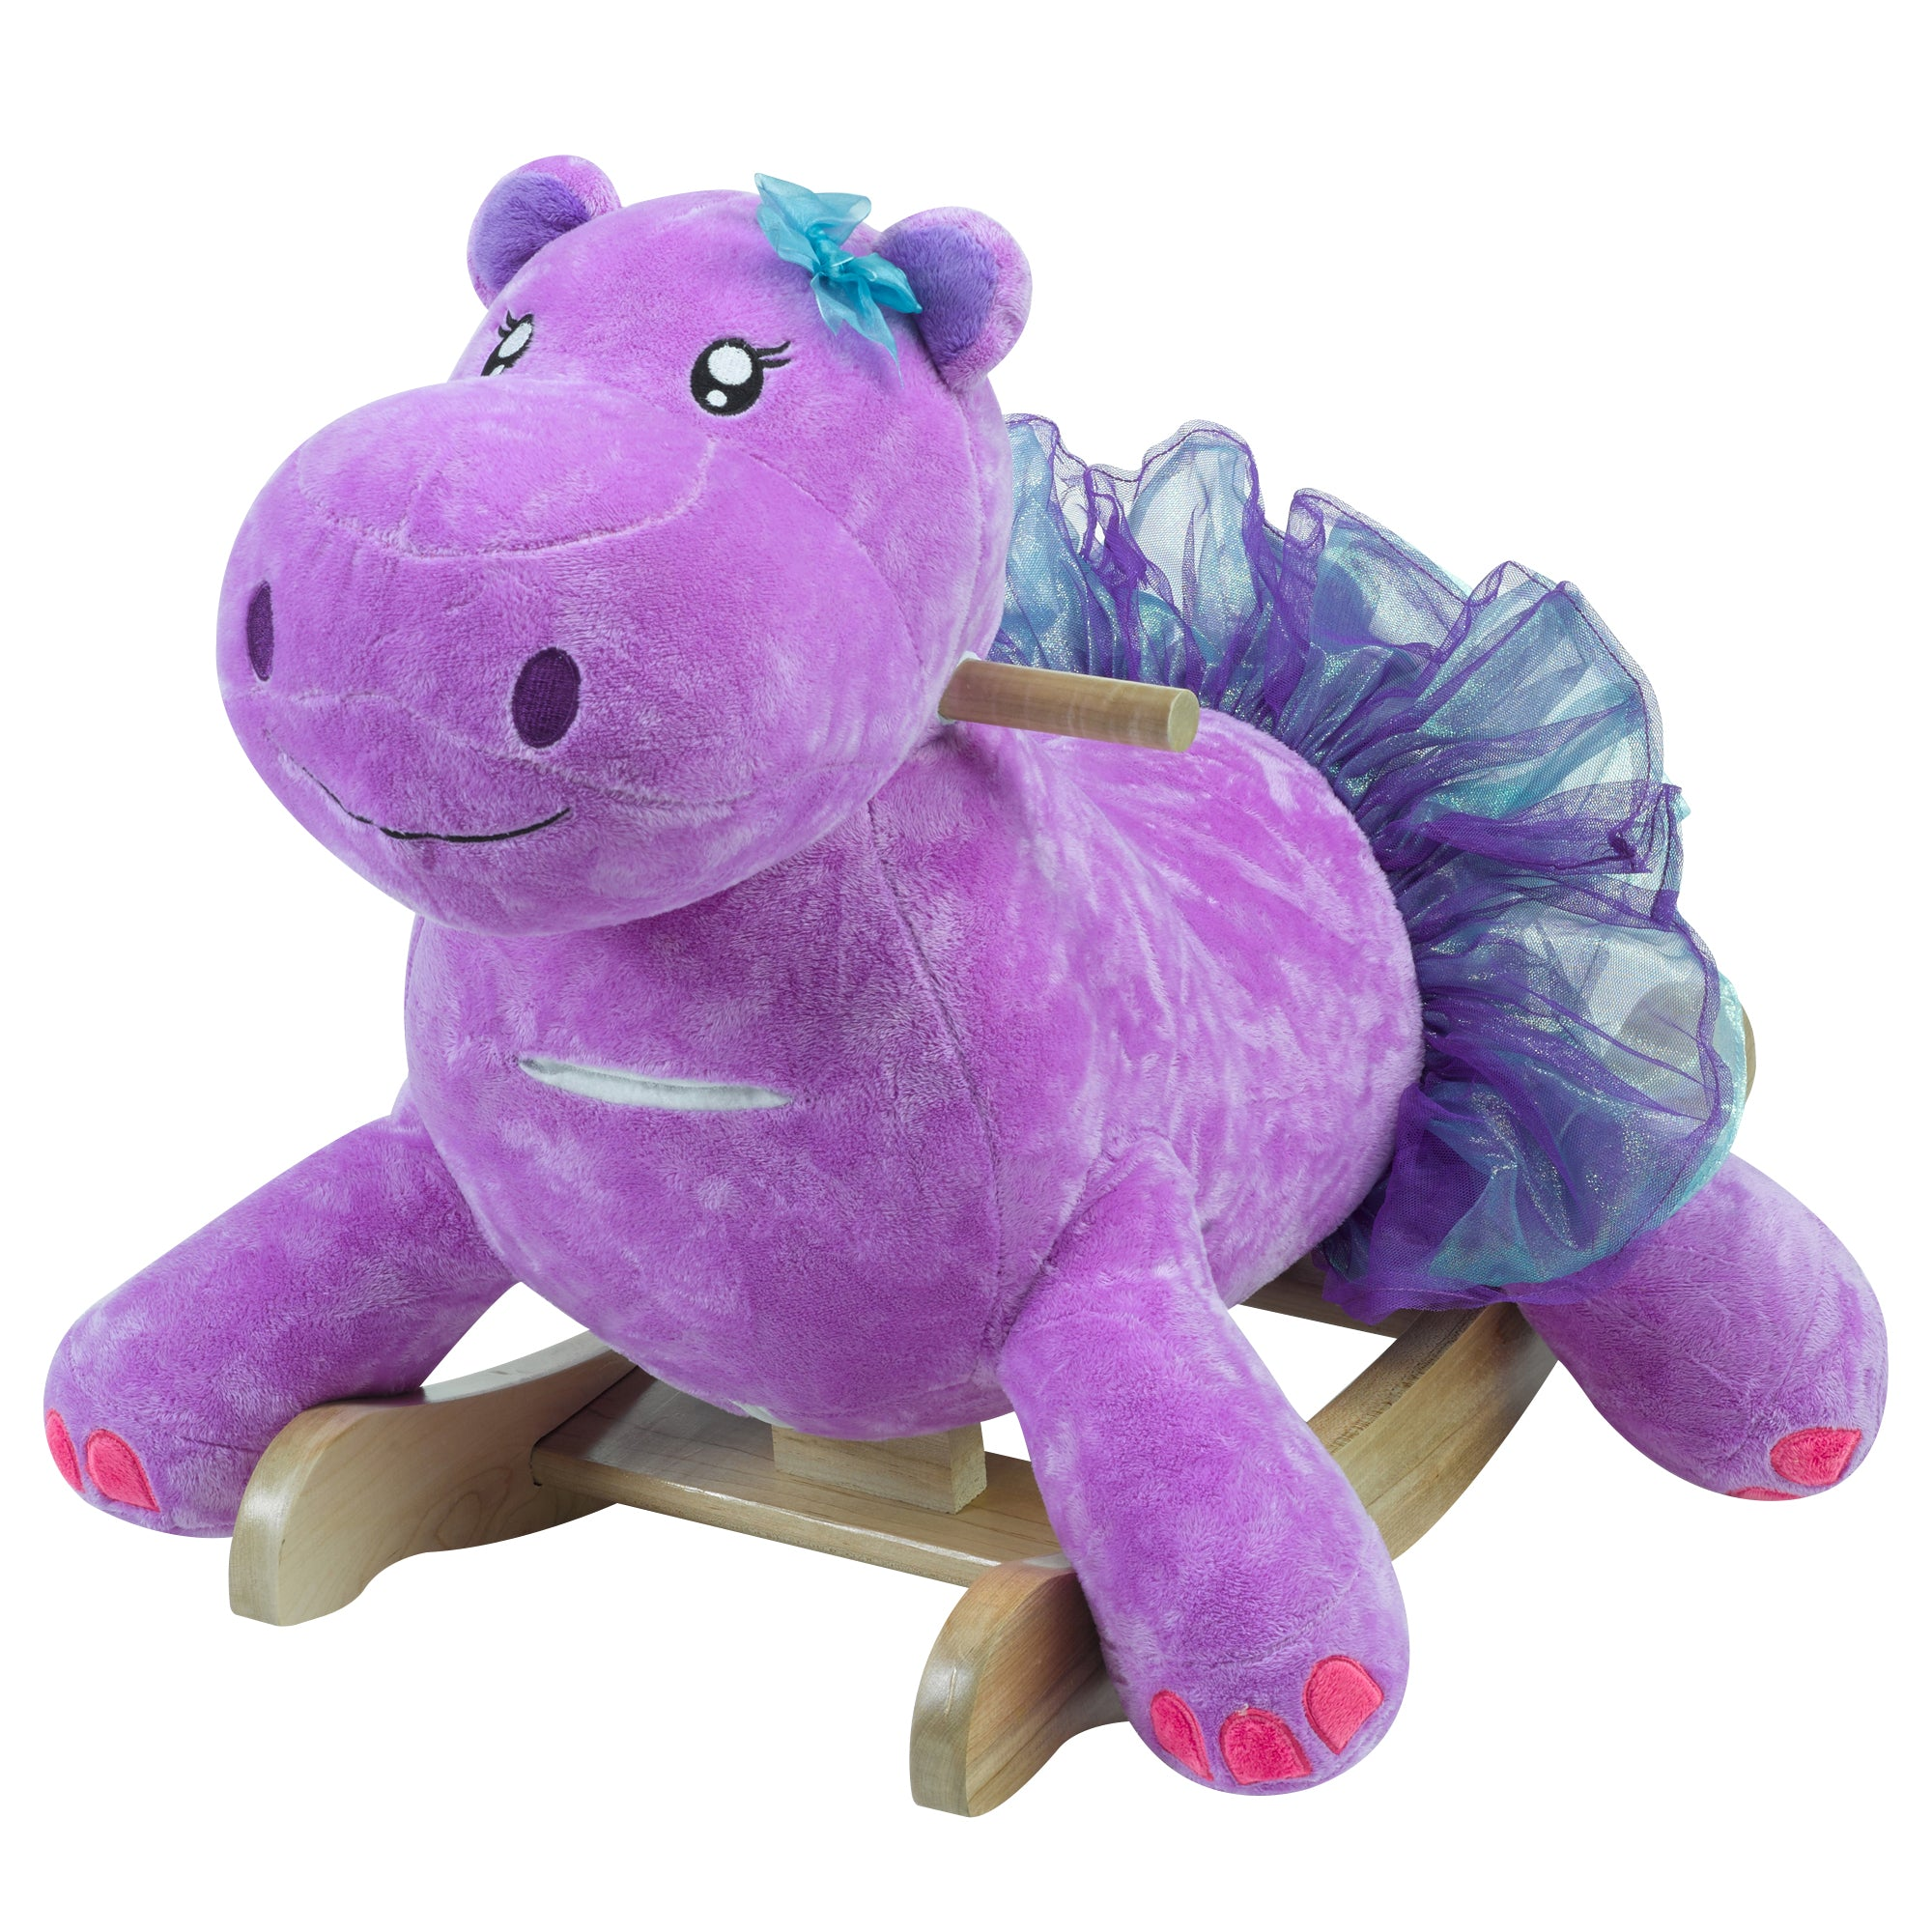 Gracie the Hippo Classic rockAbye